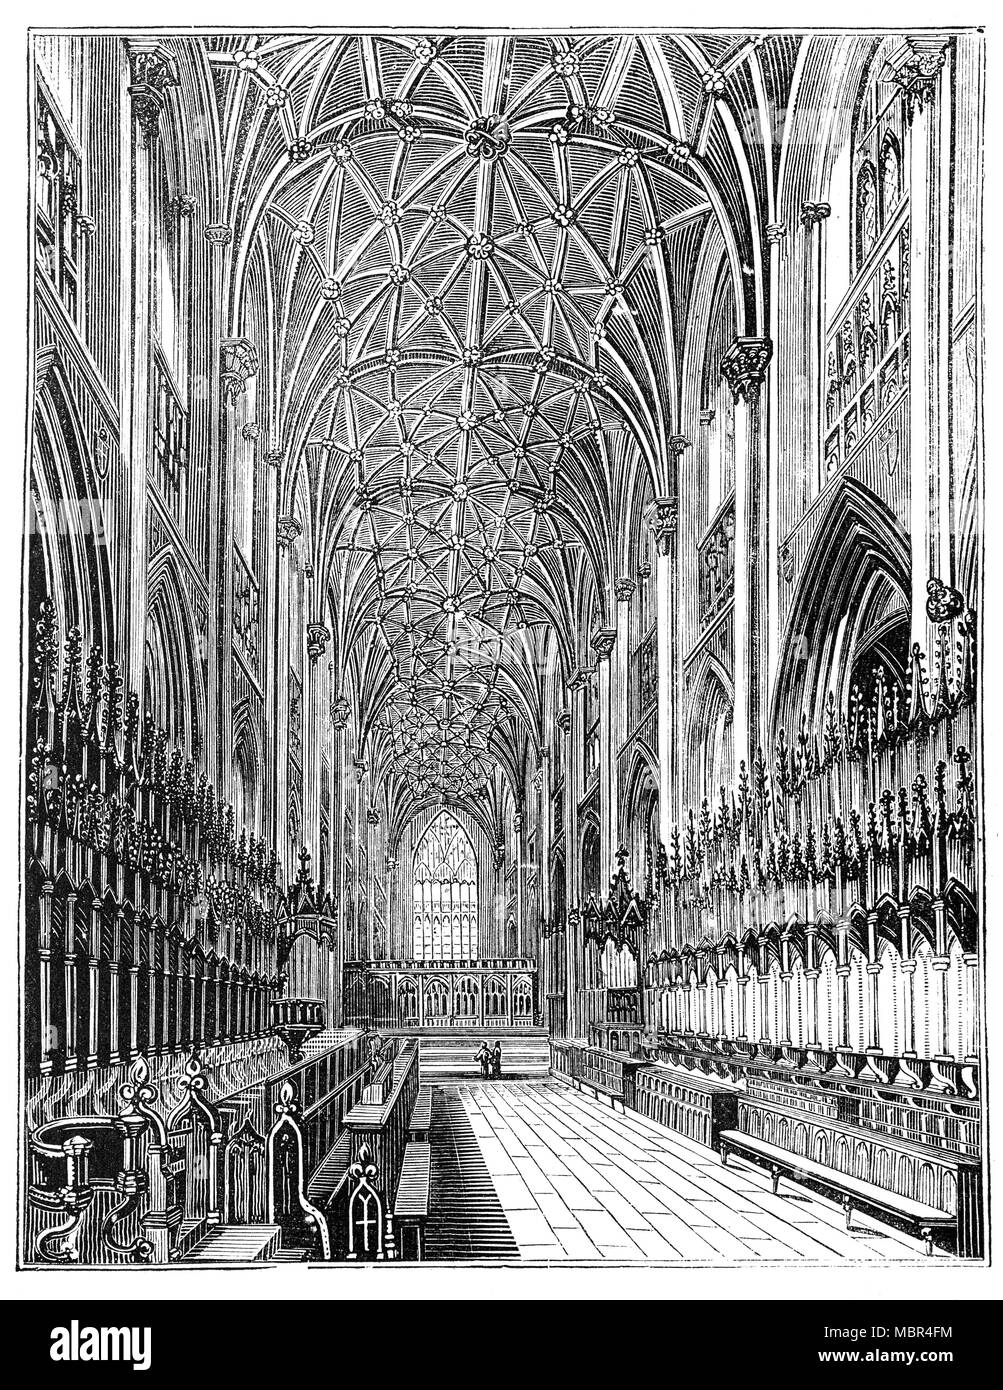 The interior and nave of the Cathedral and Metropolitan Church of Saint Peter in York, commonly known as York Minster. This English Cathedral in the Early English, Perpendicular style is one of the largest of its kind in Northern Europe. There's been many churches in the location. However in the mid 12th Century. Walter de Gray was made archbishop in 1215 and ordered the construction of a Gothic structure to compare to Canterbury; building began in 1220 and continued until declared complete and consecrated in 1472. - Stock Image